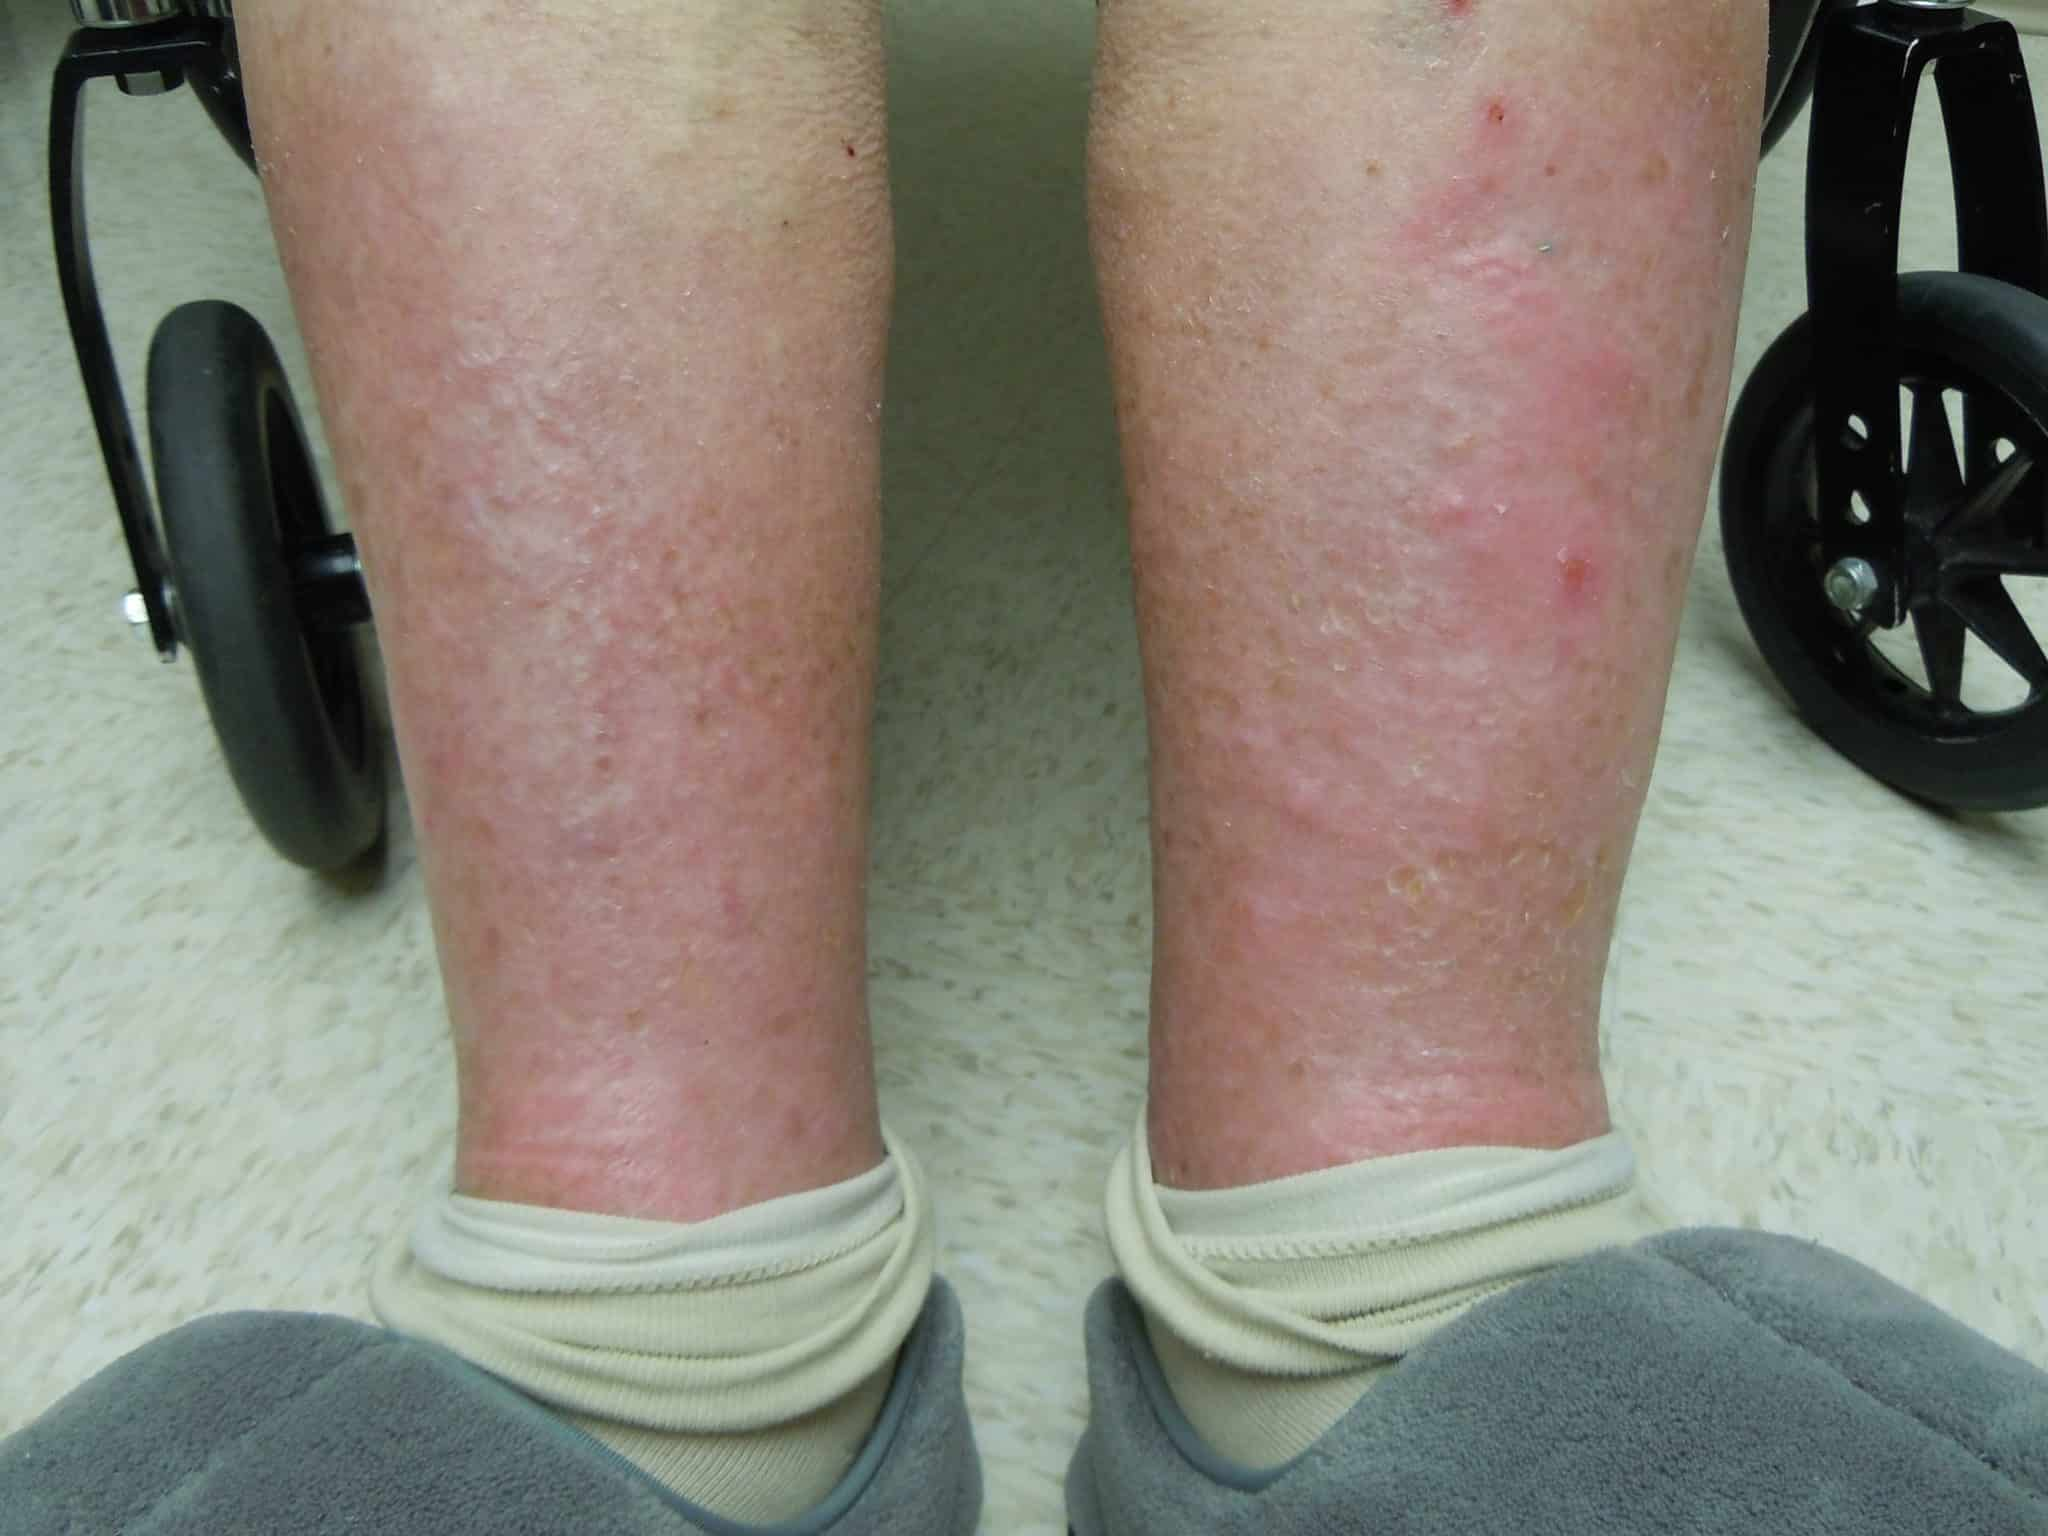 Rashes on the legs - NAET Dubai